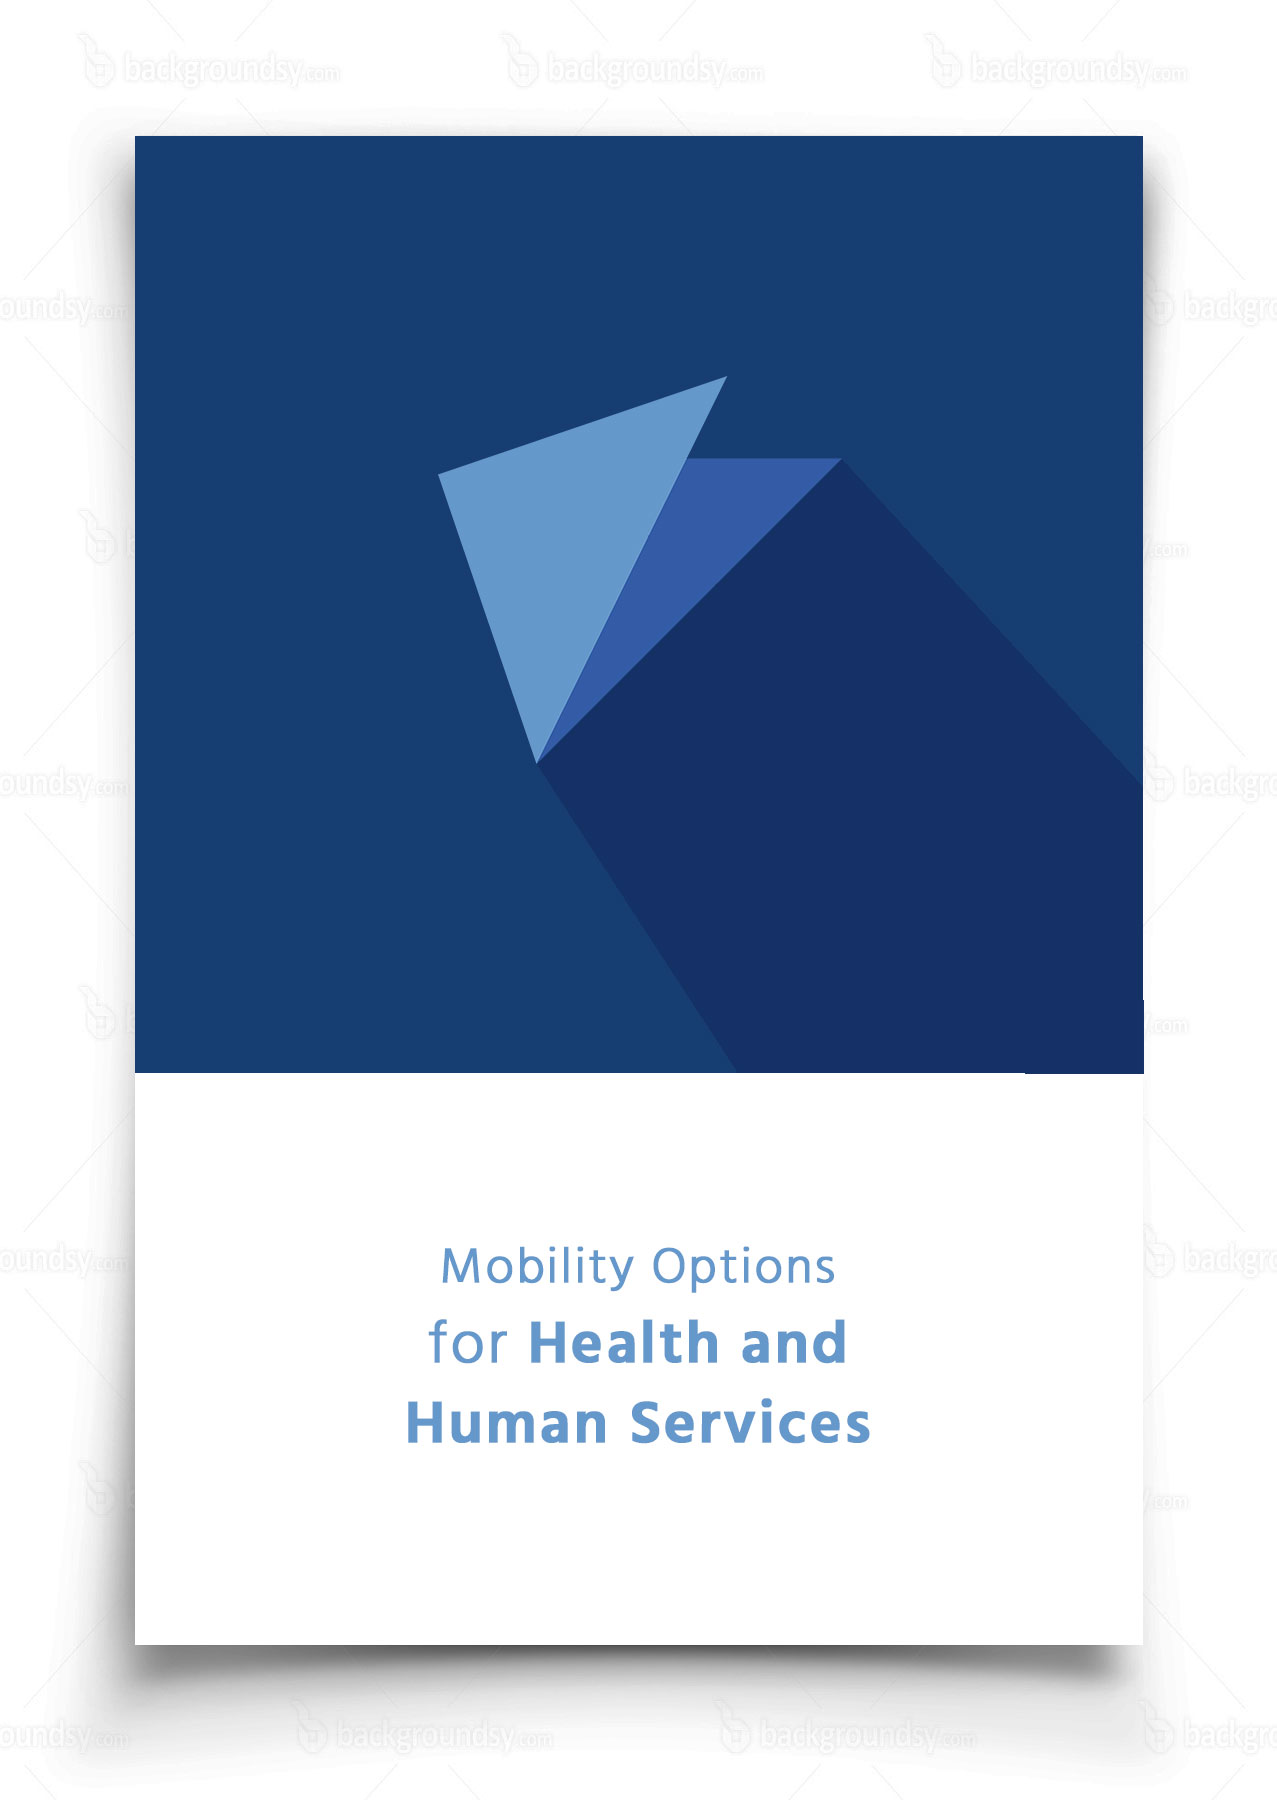 Mobility-Options-for-HHS.jpg